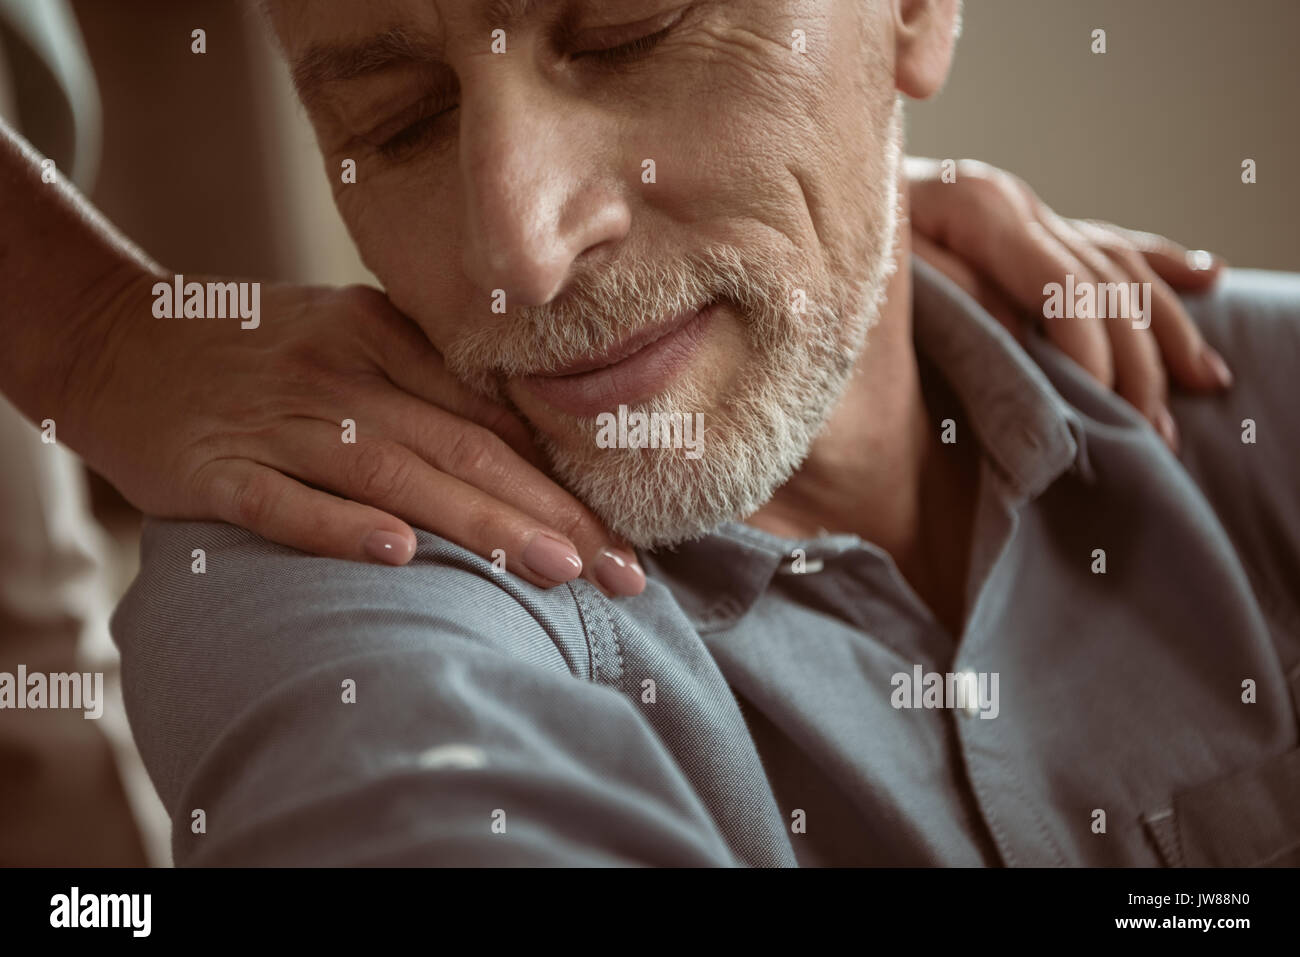 tender wife put hands on shoulders of her husband with closed eyes - Stock Image